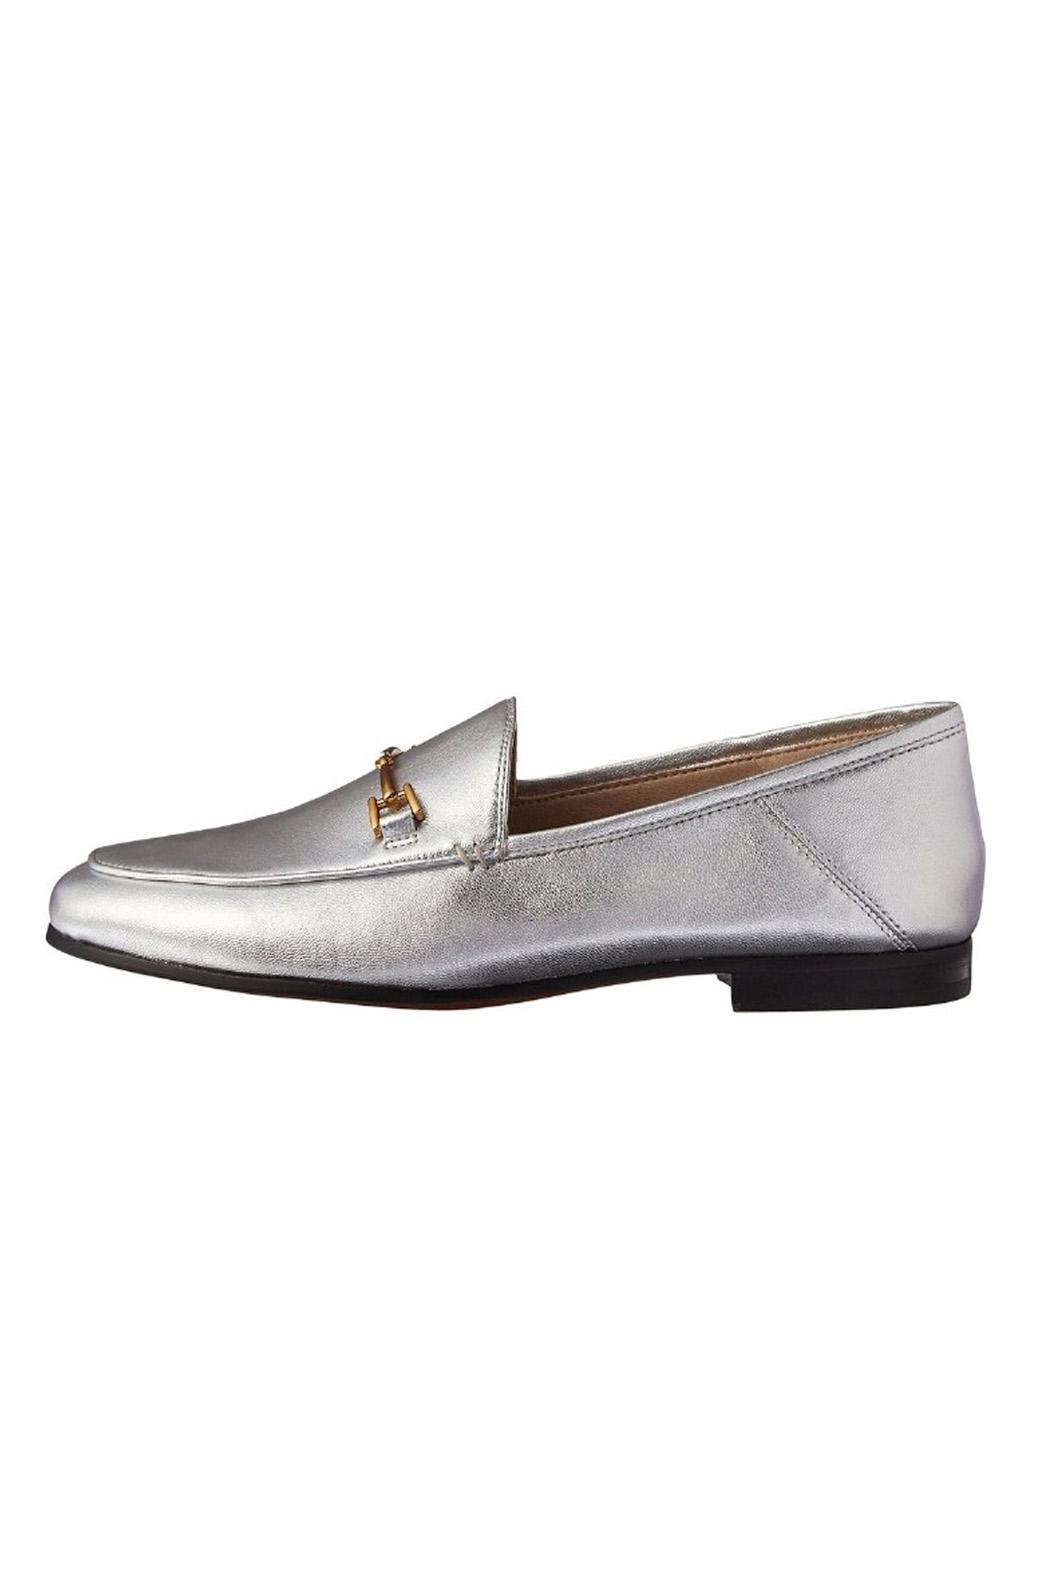 Sam Edelman Silver Metallic Loafer - Front Cropped Image